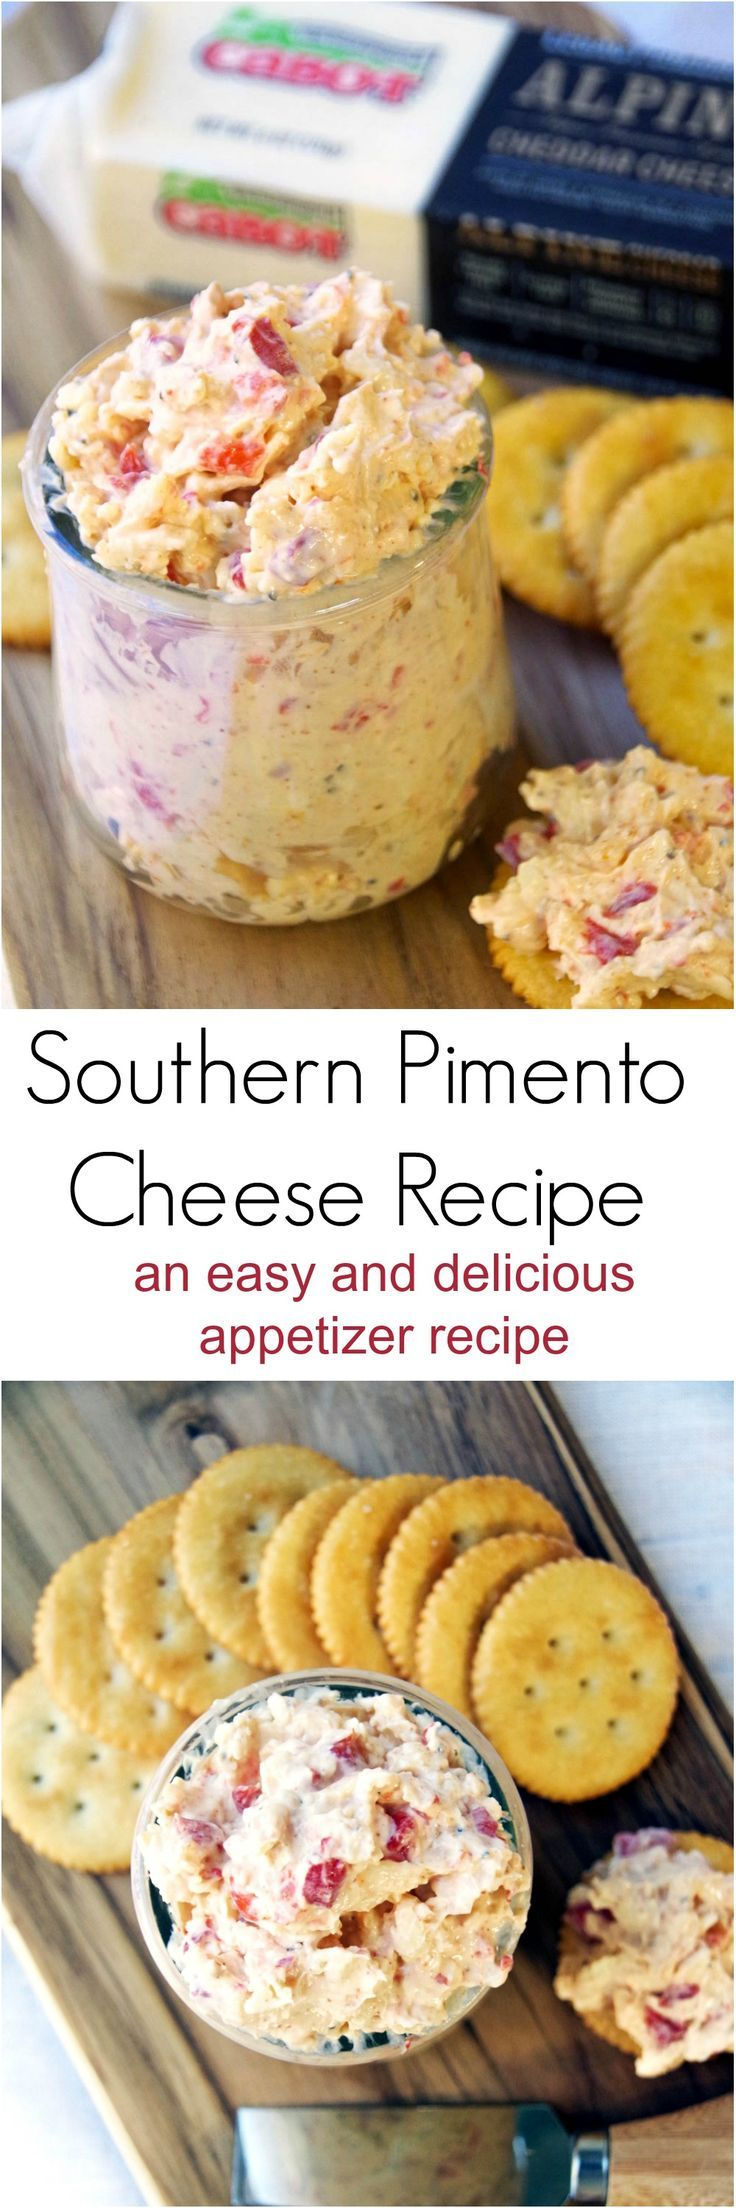 Make this traditional southern pimento cheese recipe for a deliciously easy appetizer.  Spread on crackers or scoop up with celery or tortilla chips! via @DianeHoffmaster